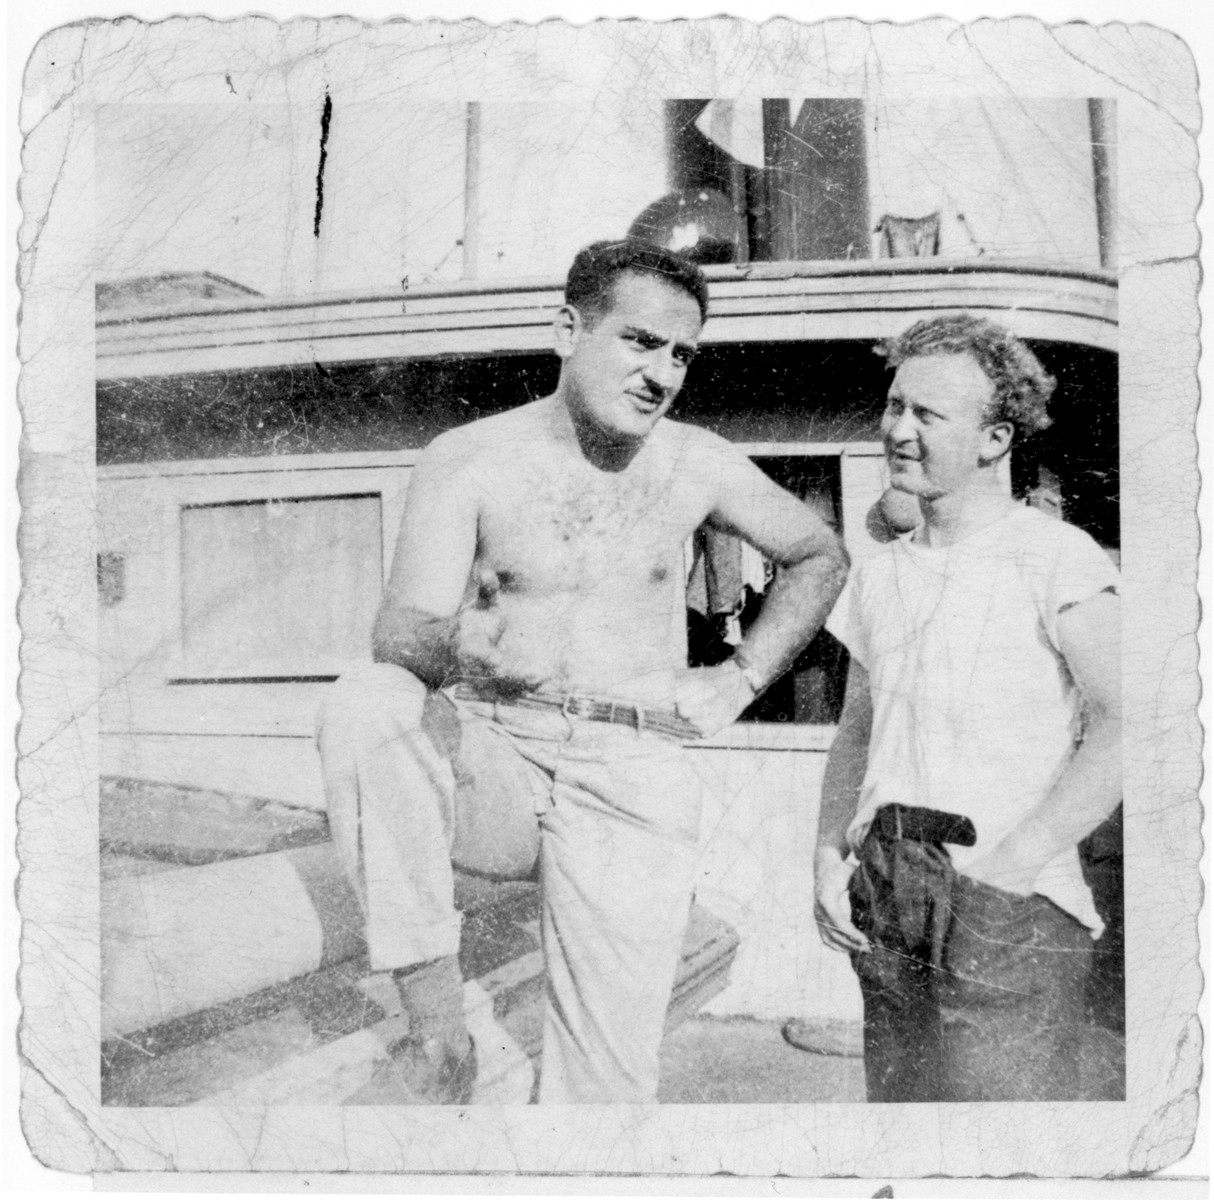 Eli Kalm (left) and William Bernstein, crew members of the President Warfield/Exodus 1947, converse on the deck of the ship before its departure for Europe.